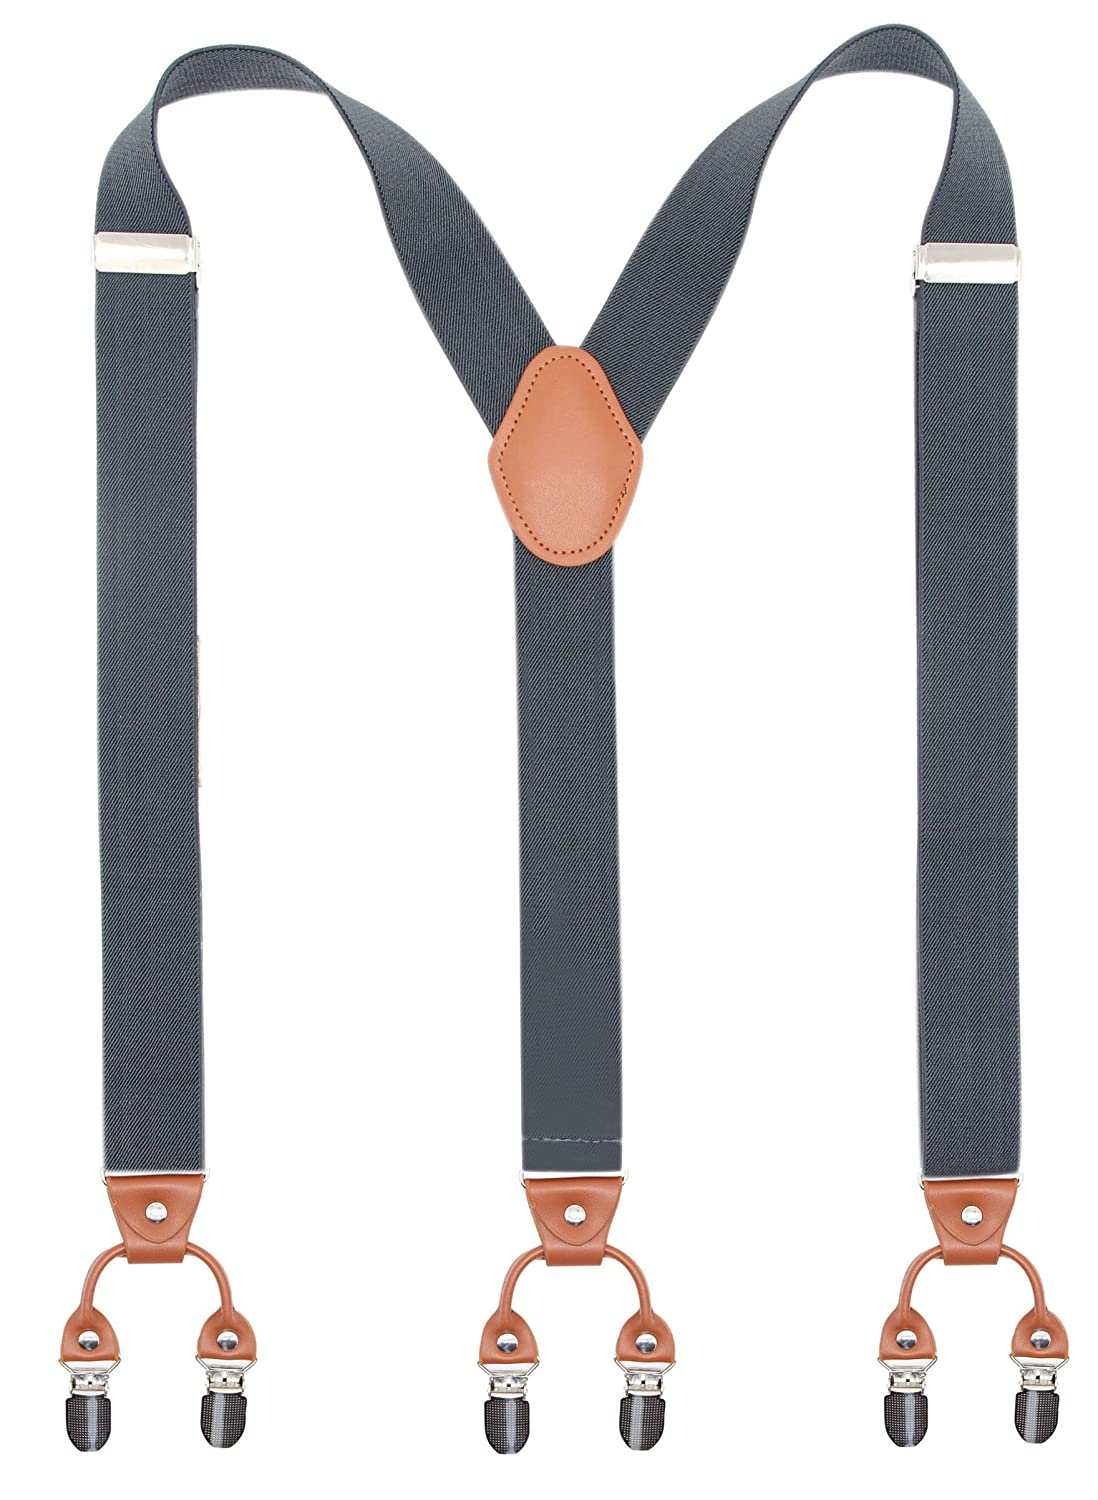 Men's Accessories Apparel Accessories Trend Mark Solid Buckle Adjust Clipping 3 Clips Creative Popular Brown Leather Kids Suspender Y Back Holiday Outfit For Boys Wedding Use